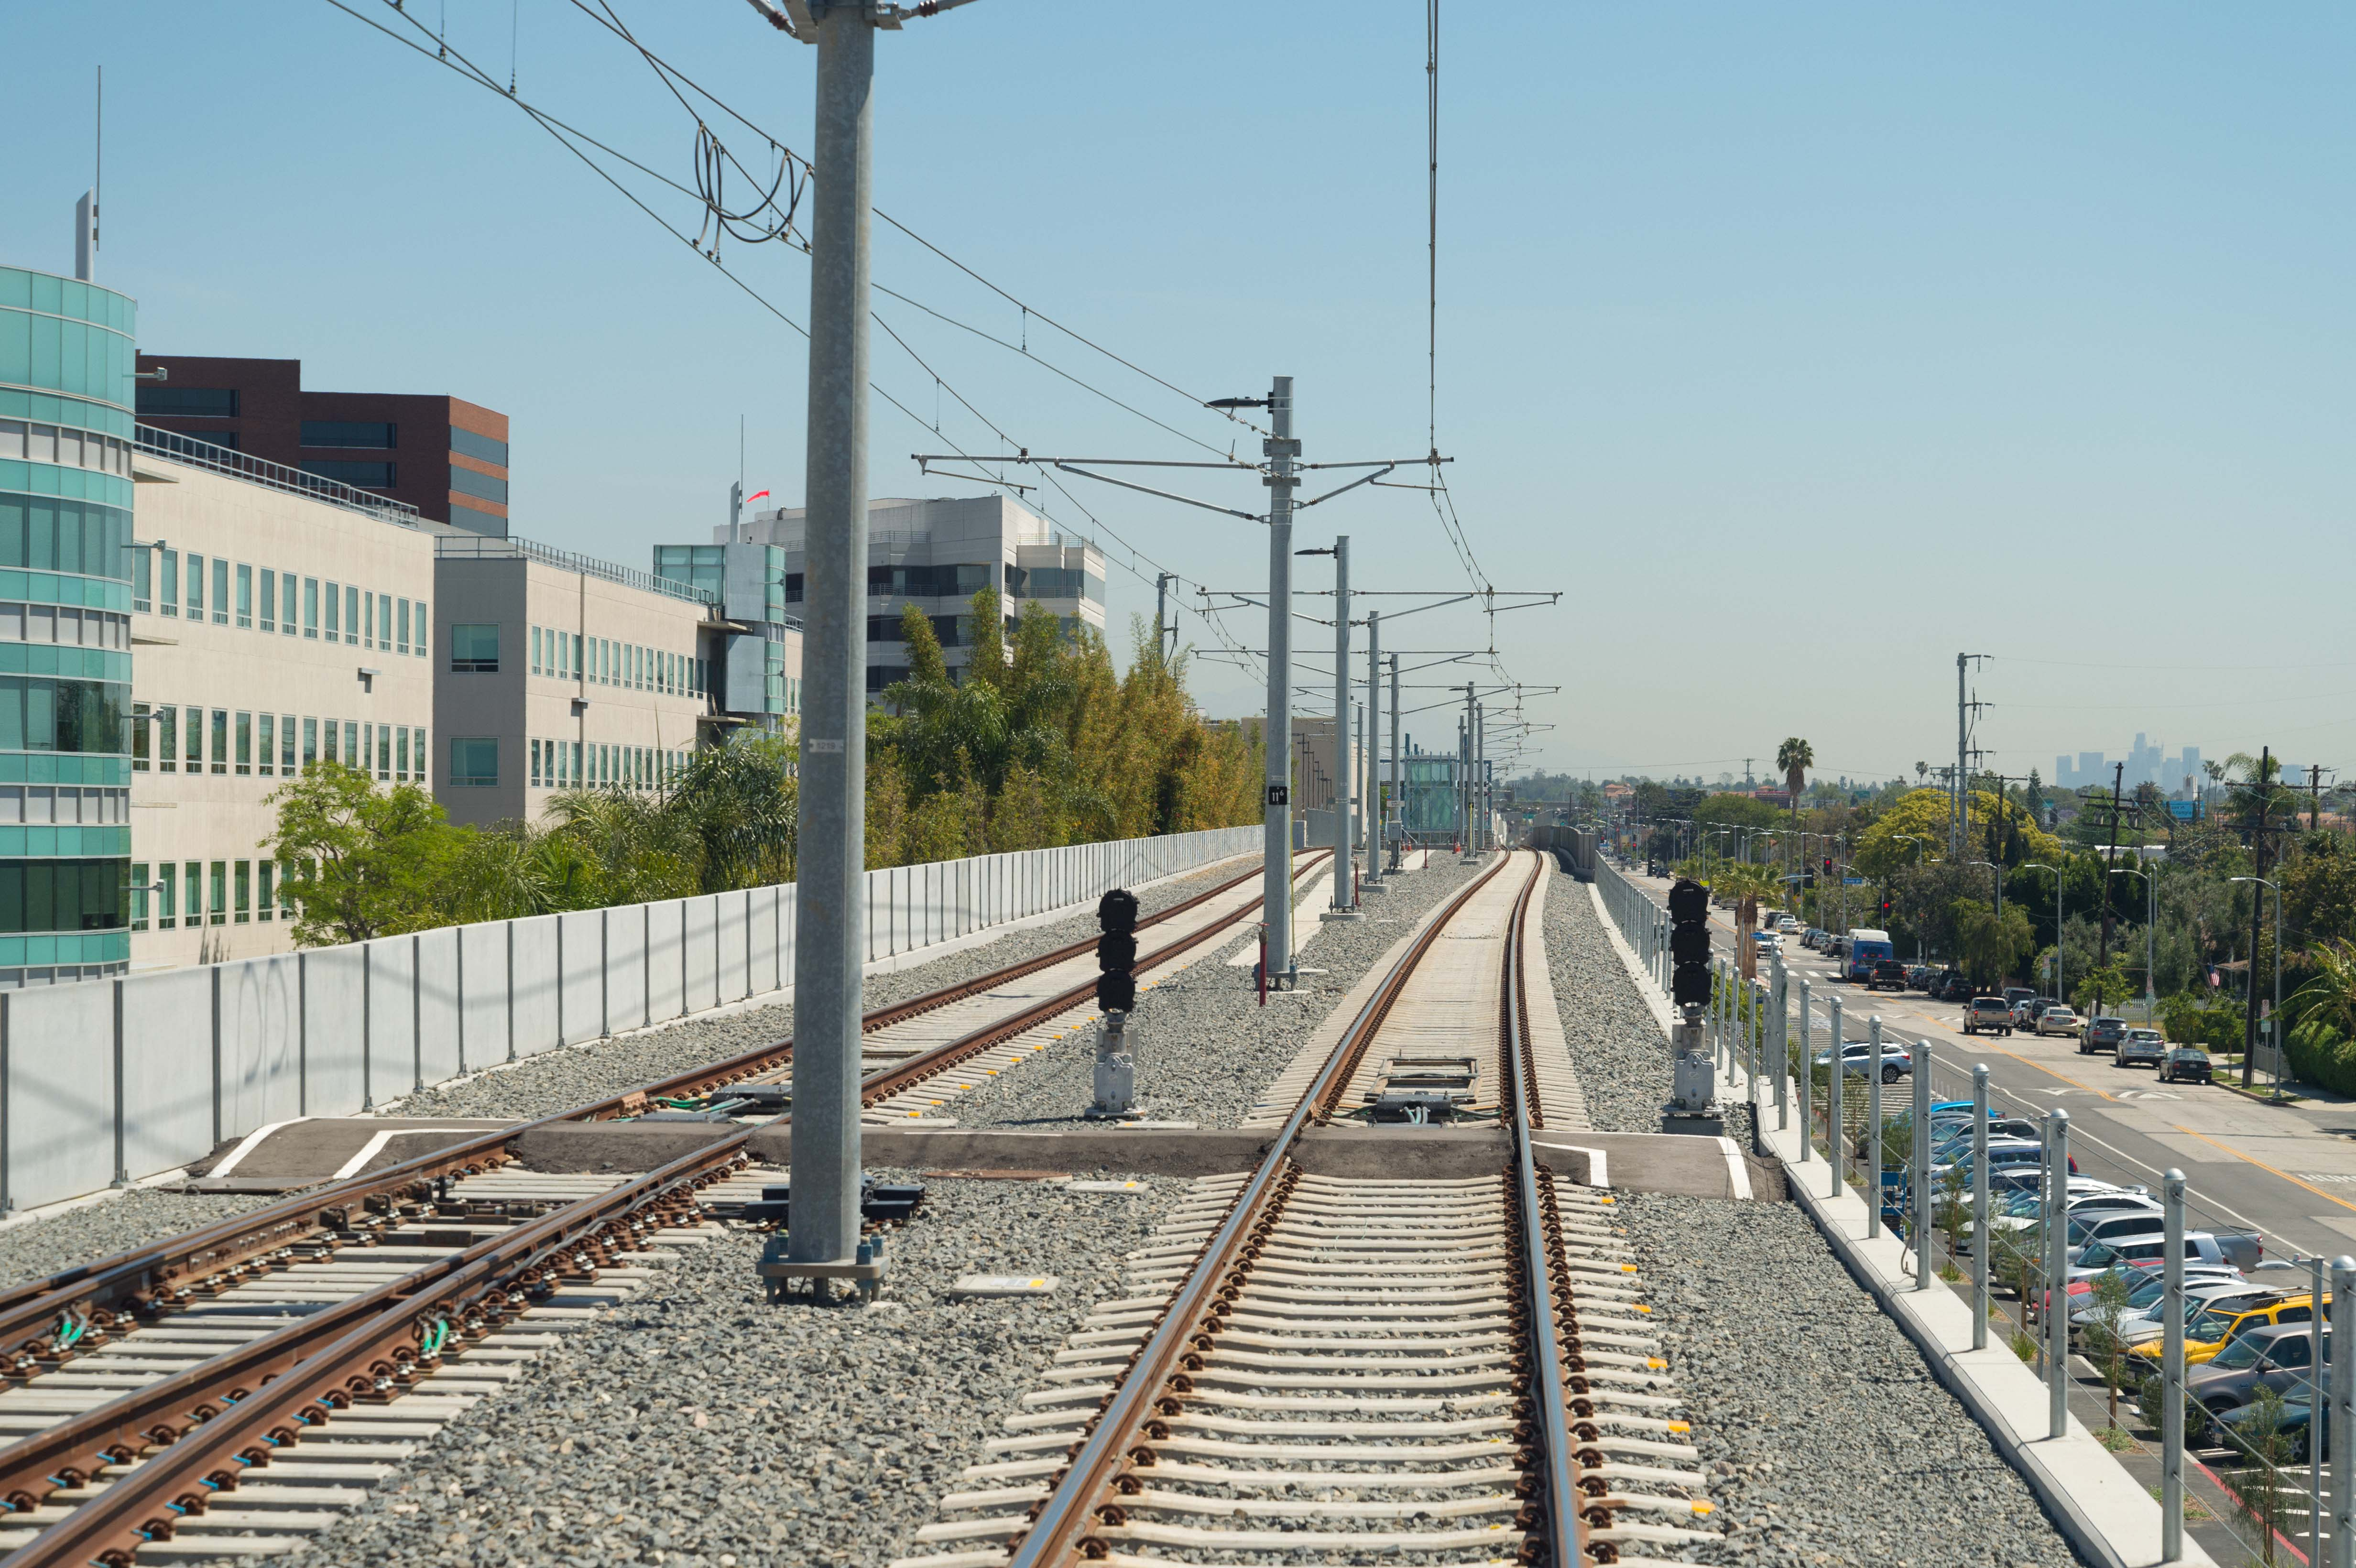 Parking at the Bundy station can be seen to the right of the tracks. Photo by Steve Hymon/Metro.